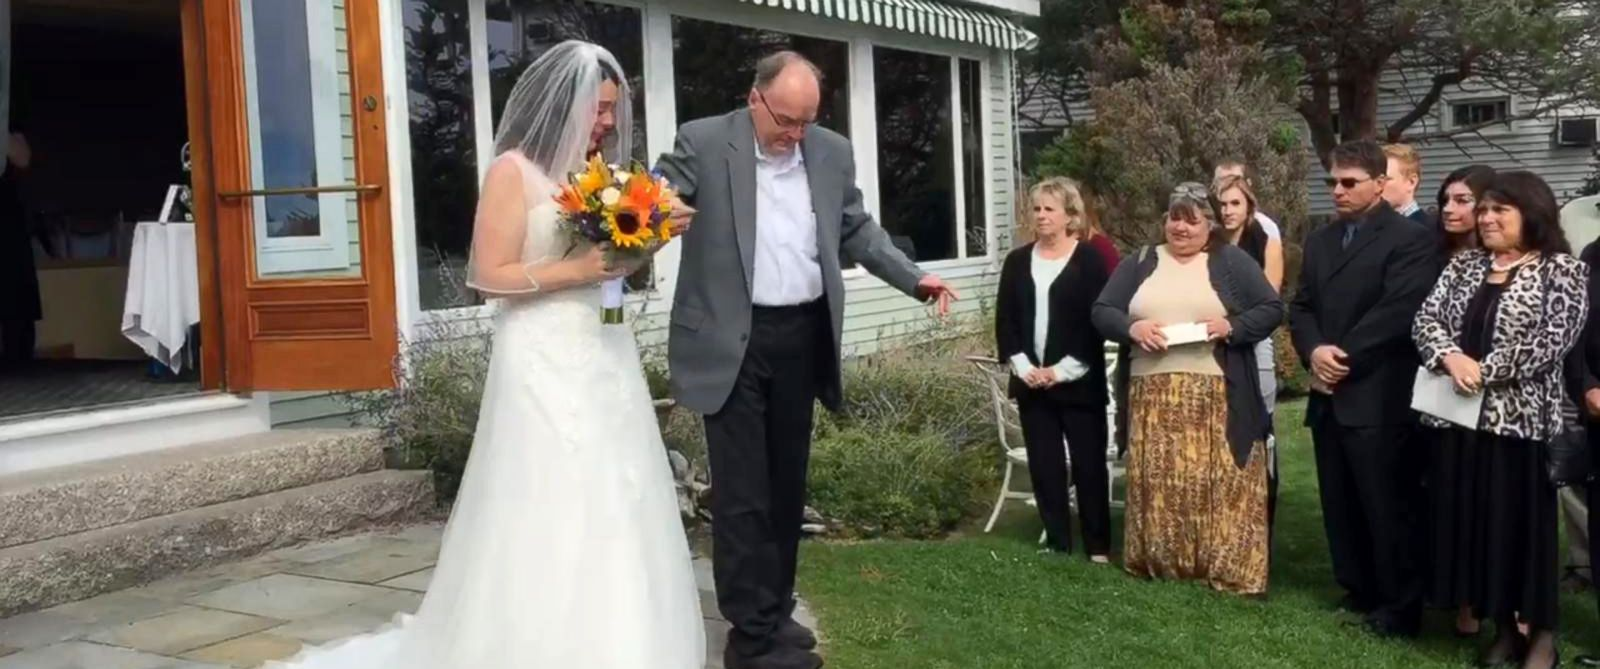 PHOTO: Ralph Duquette surprised his daughter Heather by standing up from his wheelchair and walking her down the aisle at her wedding in Maine.